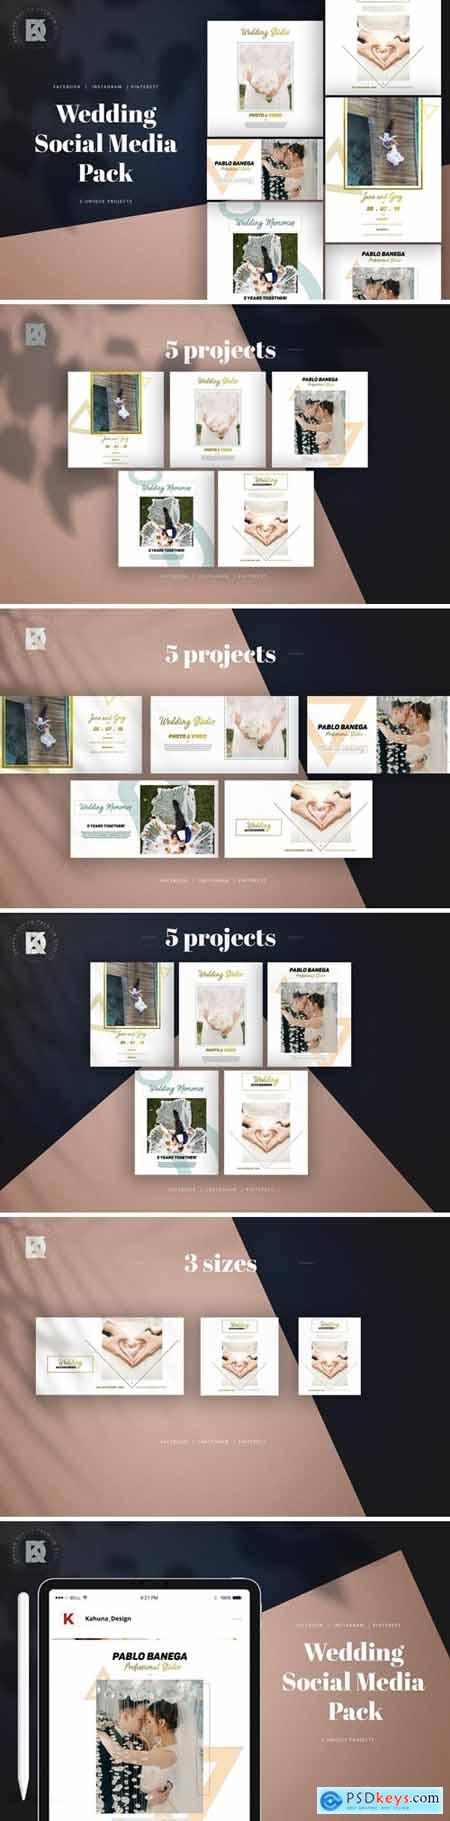 Wedding Social Media Pack